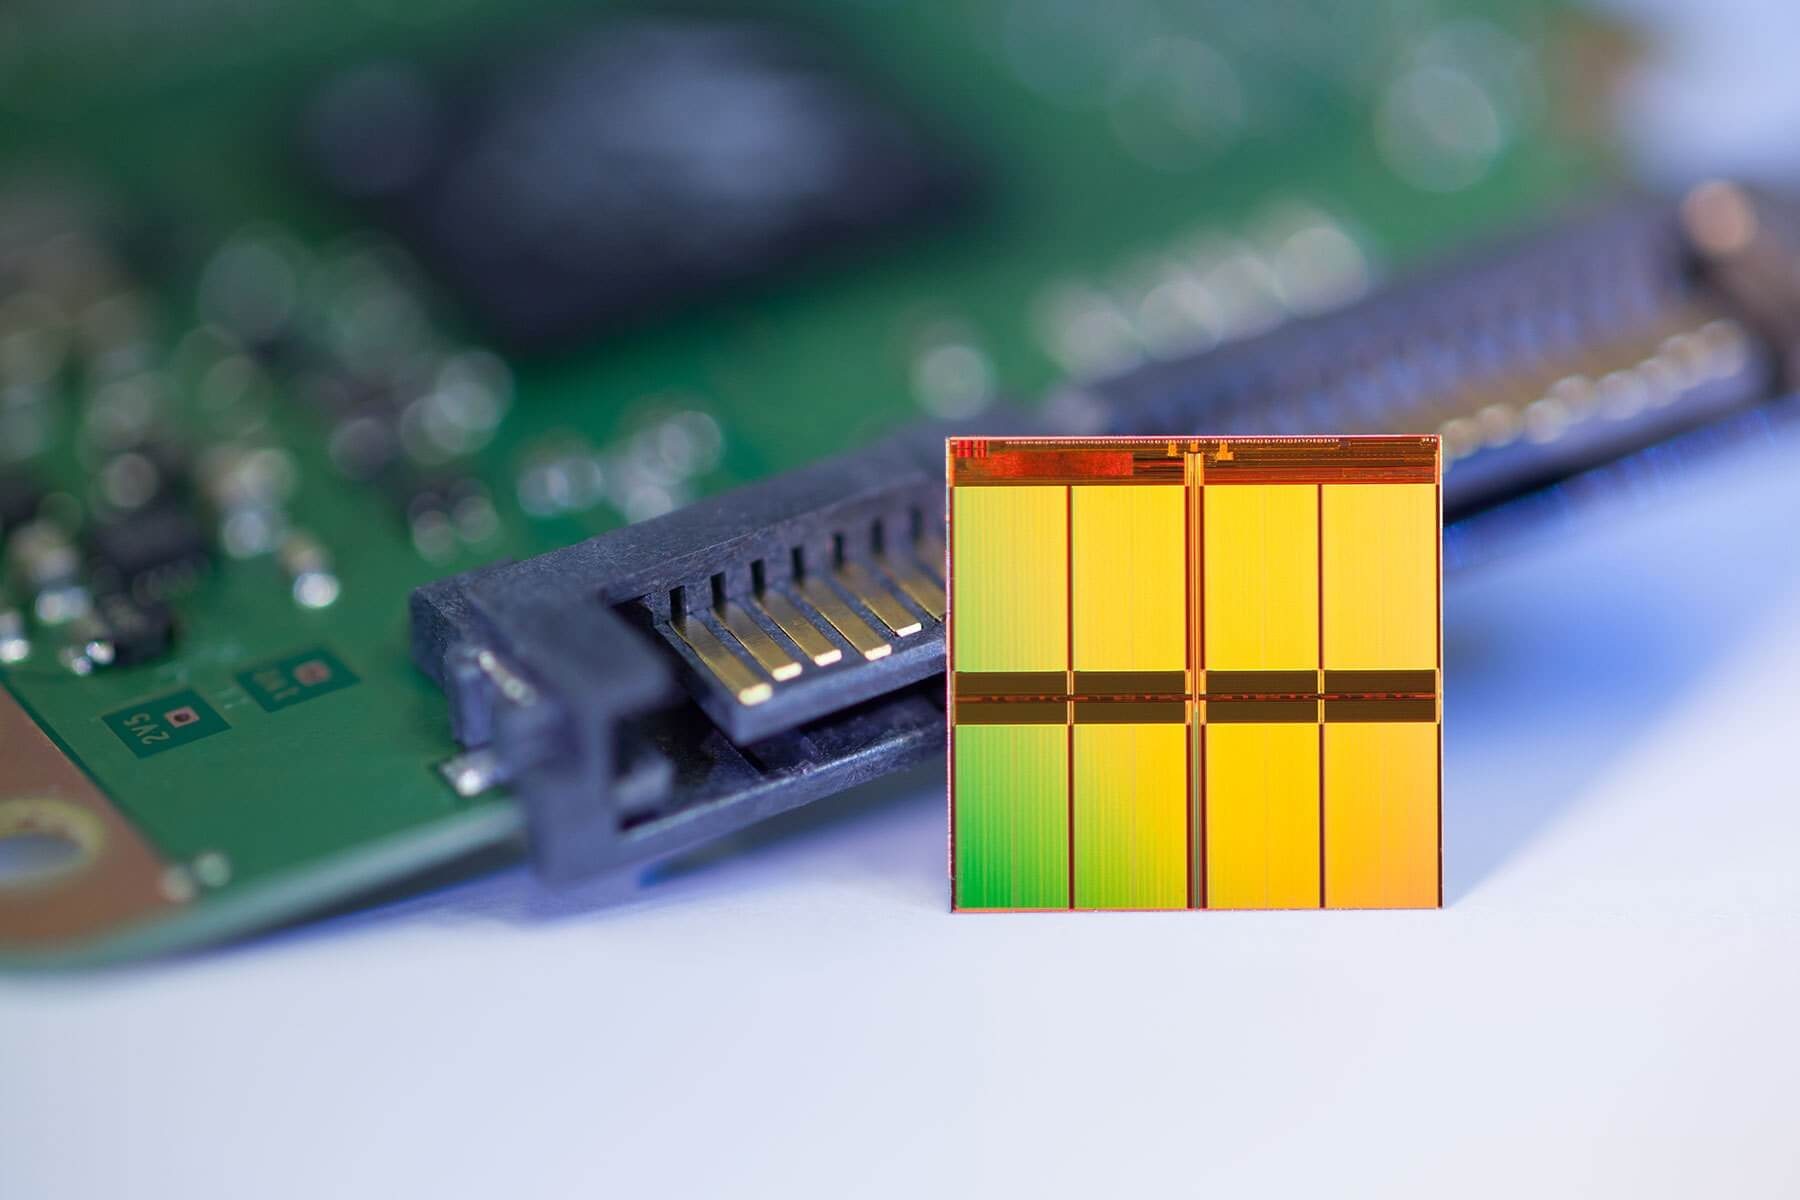 Hardware-based disk encryption can be bypassed in certain SSDs